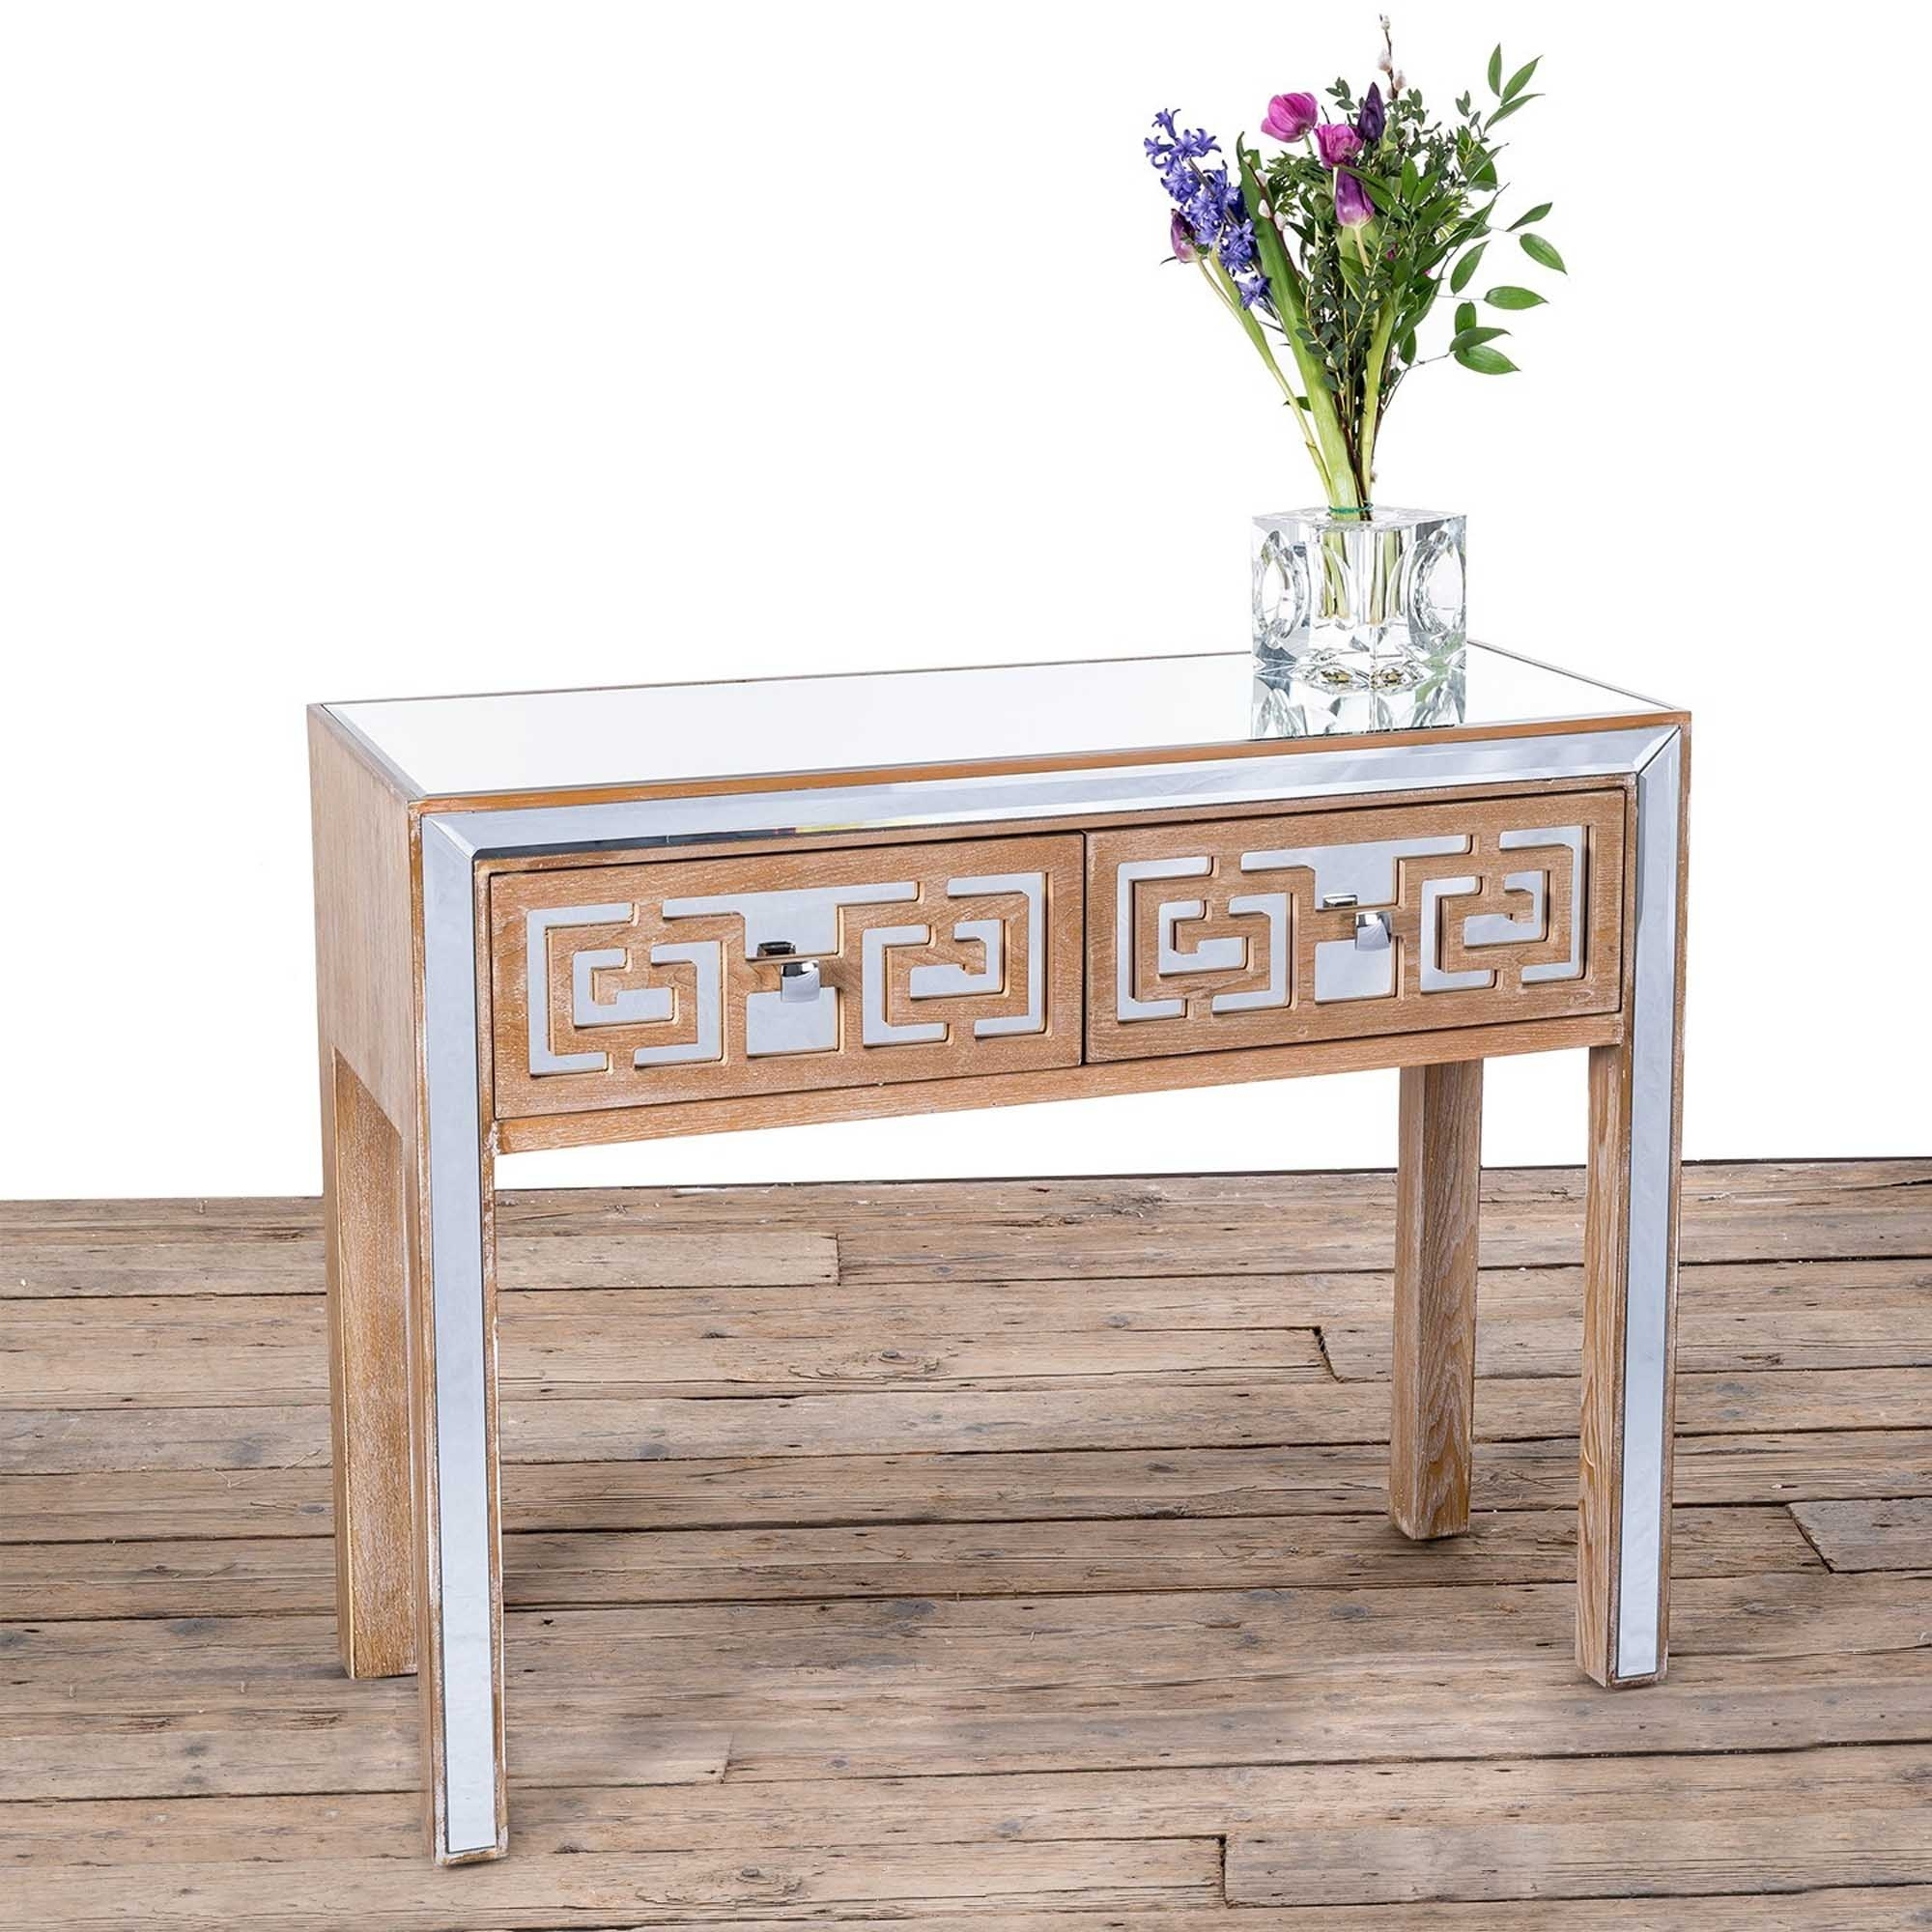 Labyrinth Mirrored Wooden Console Table Labyrinth Mirrored